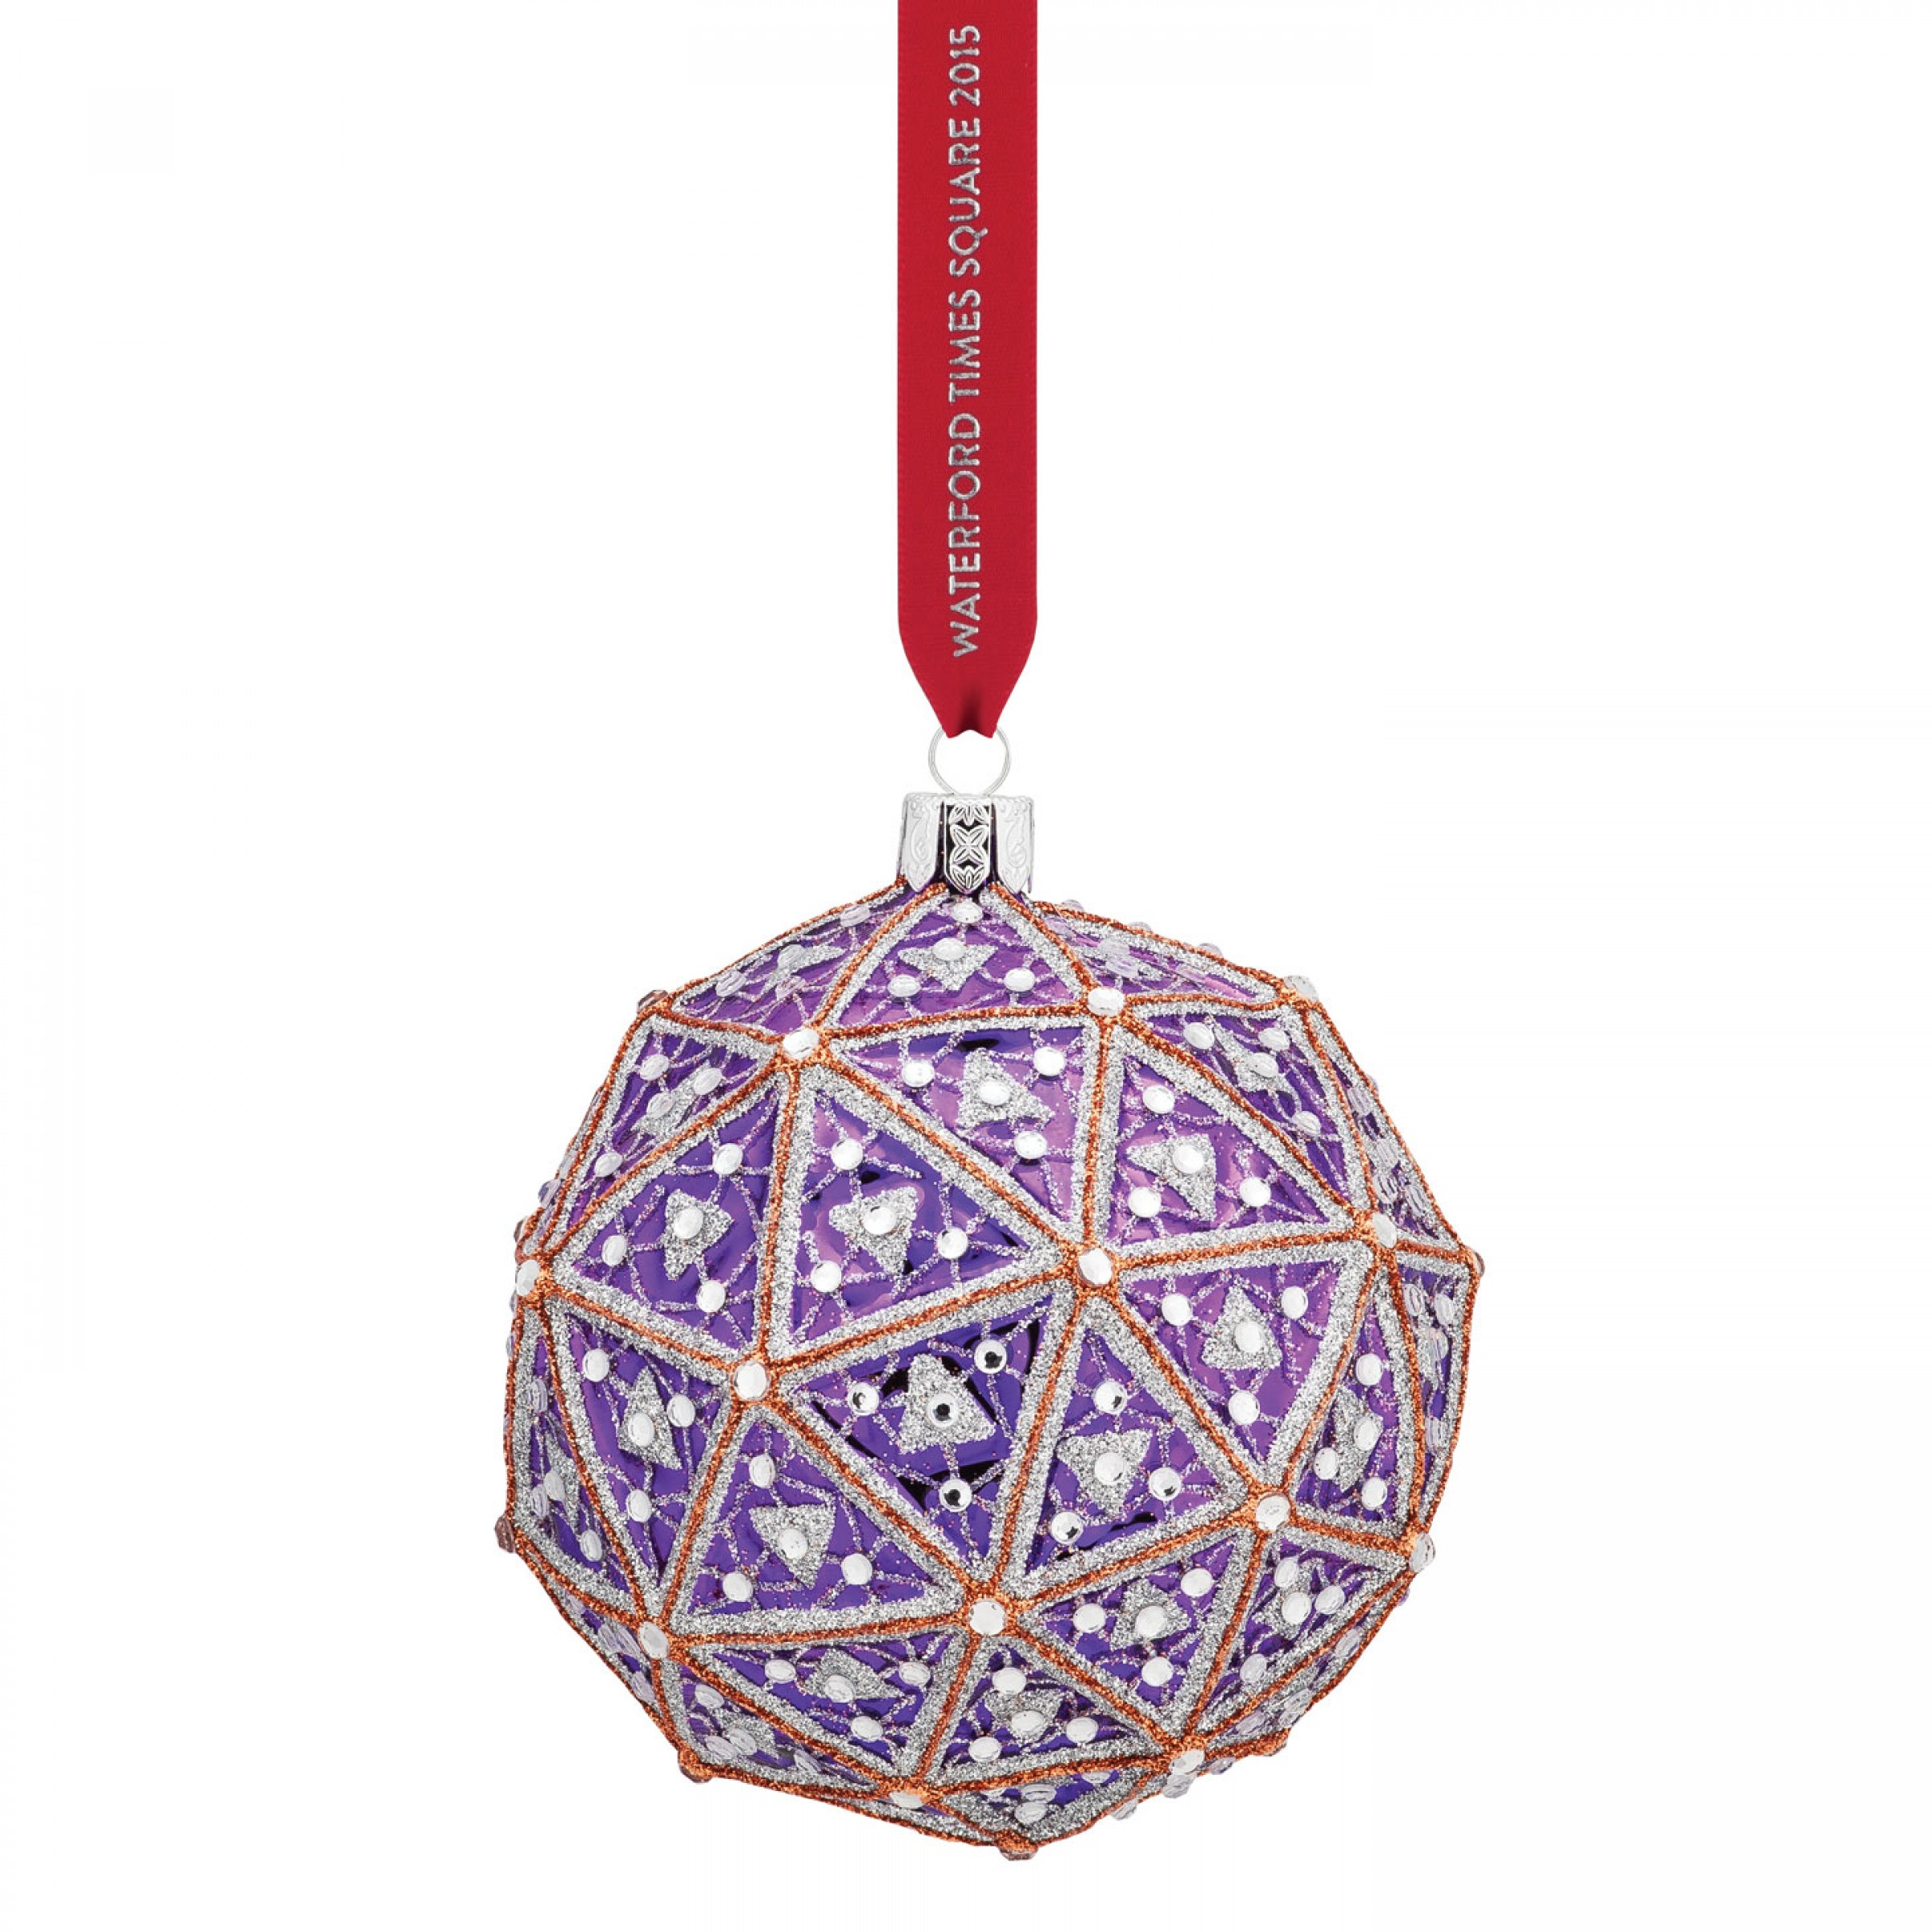 Waterford Crystal 12 Days Of Christmas Ornaments